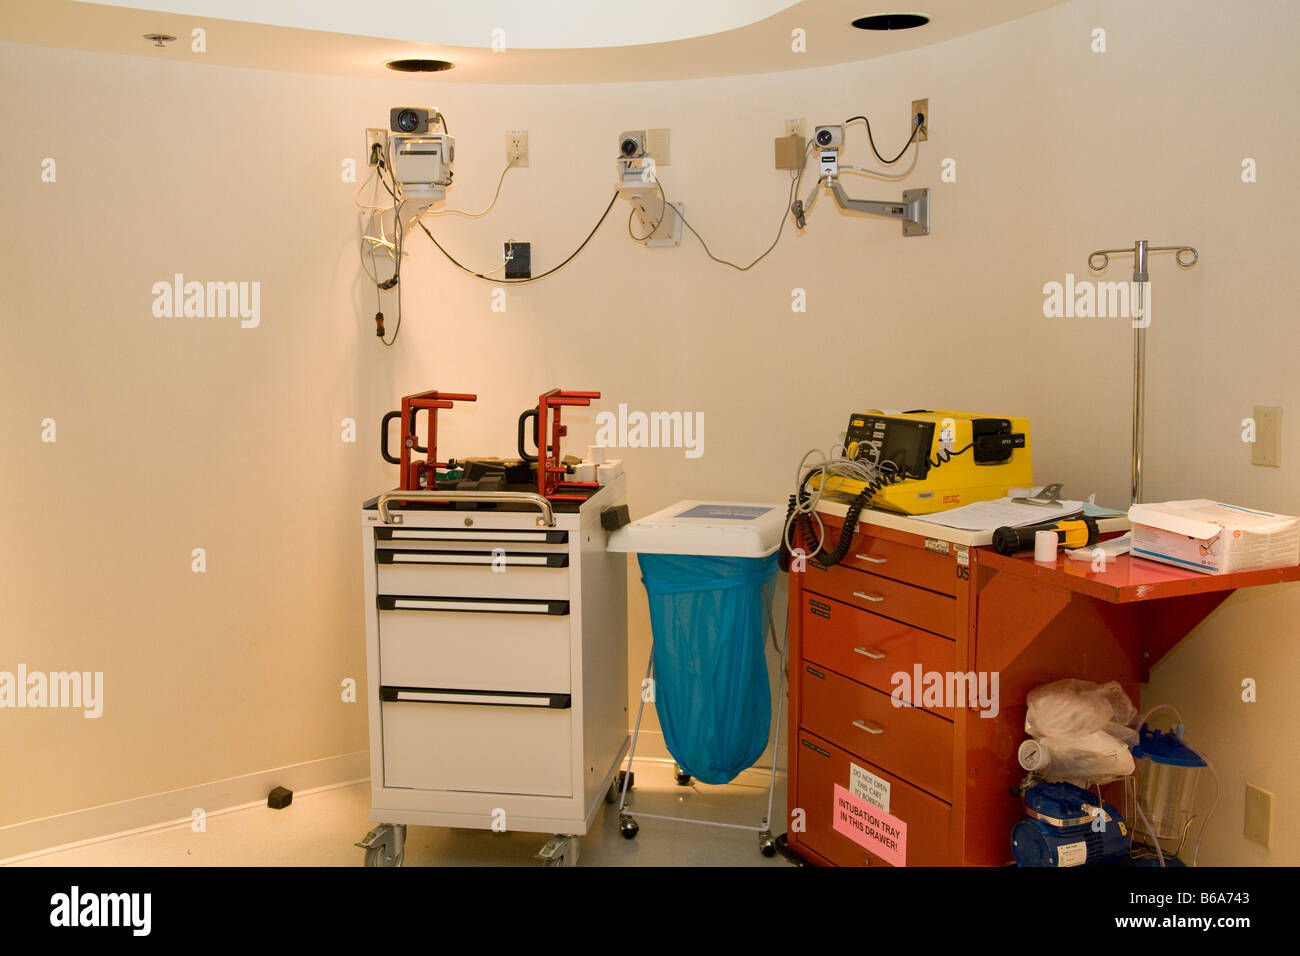 Medical procedure room with crash cart, security cameras, medicine cabinet and IV pole - Stock Image